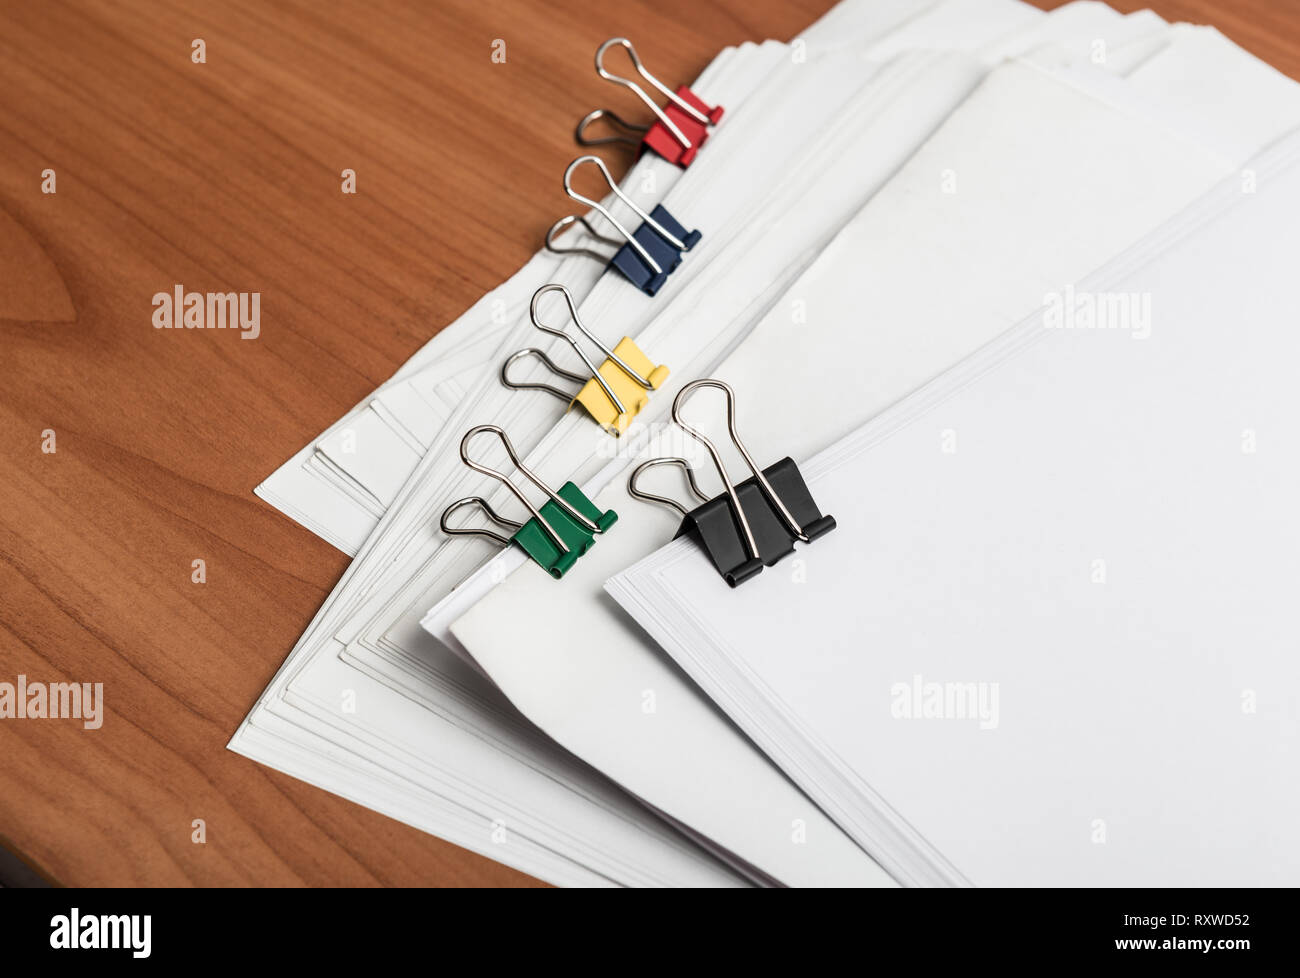 White paper document template with metal color clips on work table side view - Stock Image